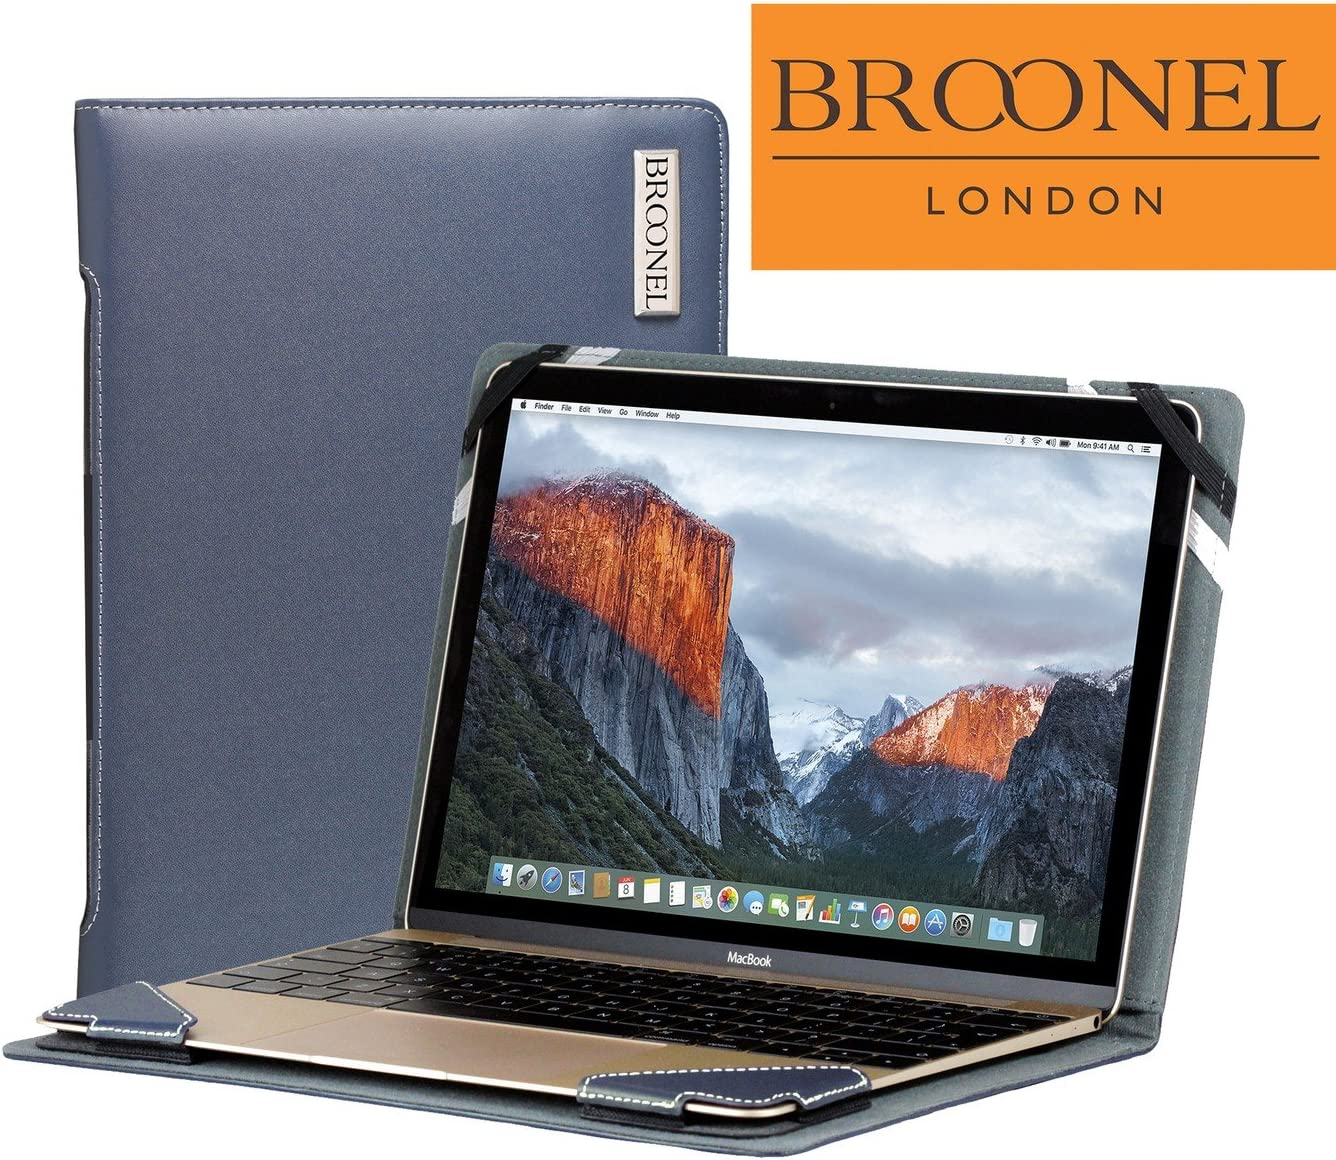 Broonel London - Profile Series - Blue Leather Luxury Laptop Case For the Acer Chromebook R 11 (CB5-132T-C1LK)